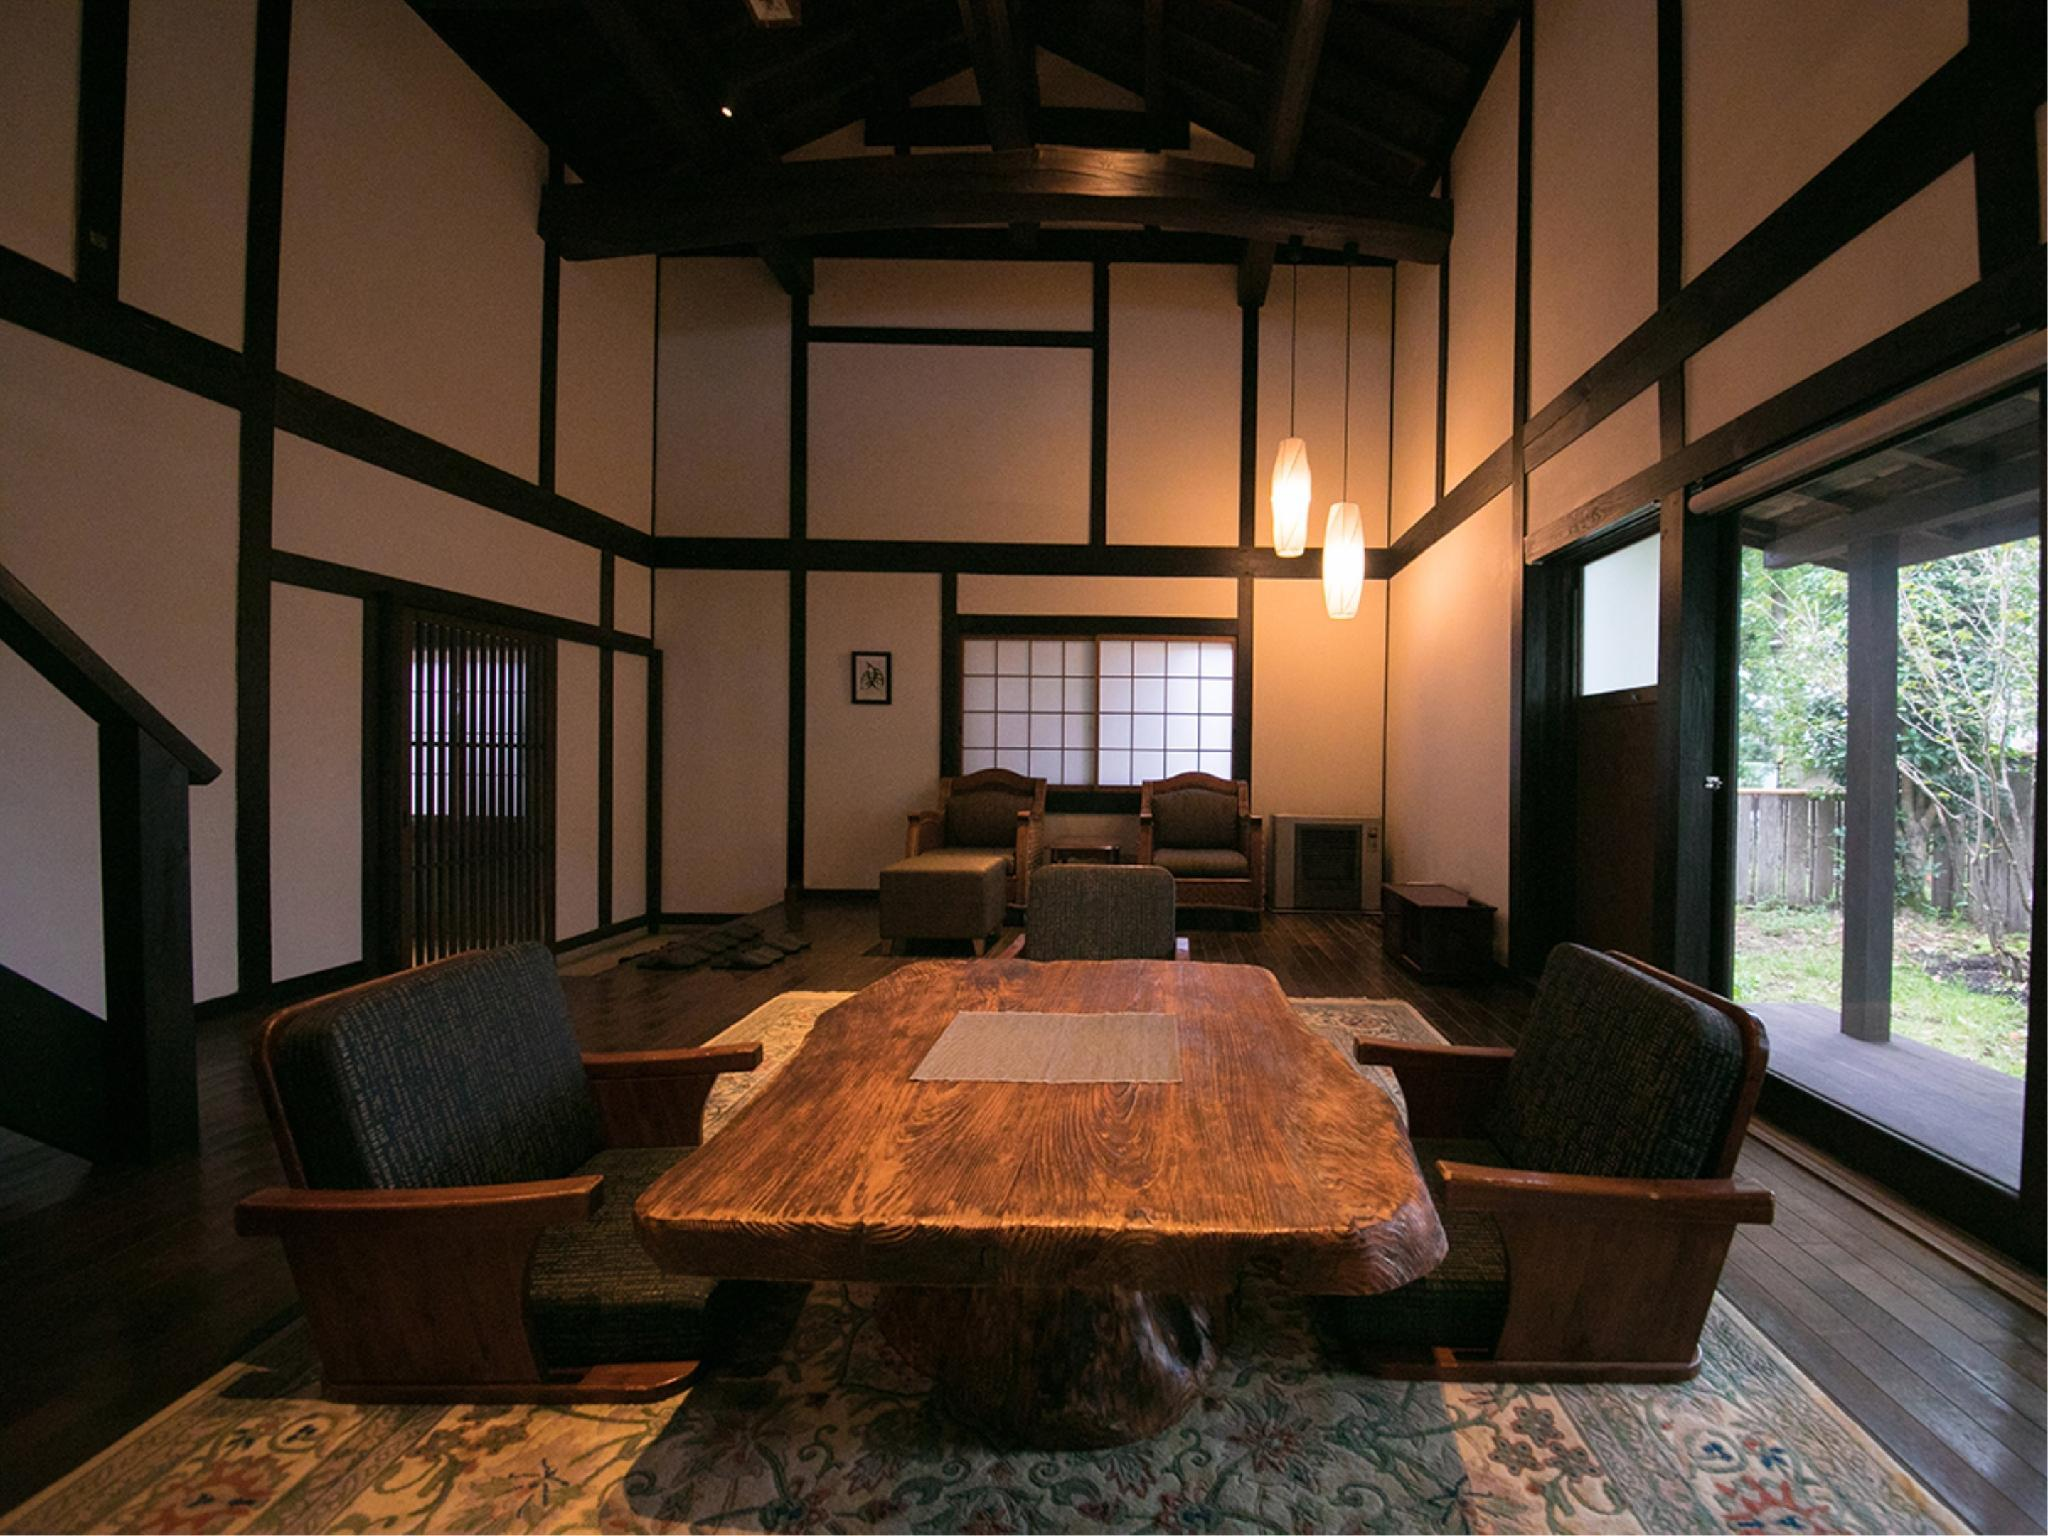 Detached Room with Indoor Bath (Nogami Type/Chikuden Type)